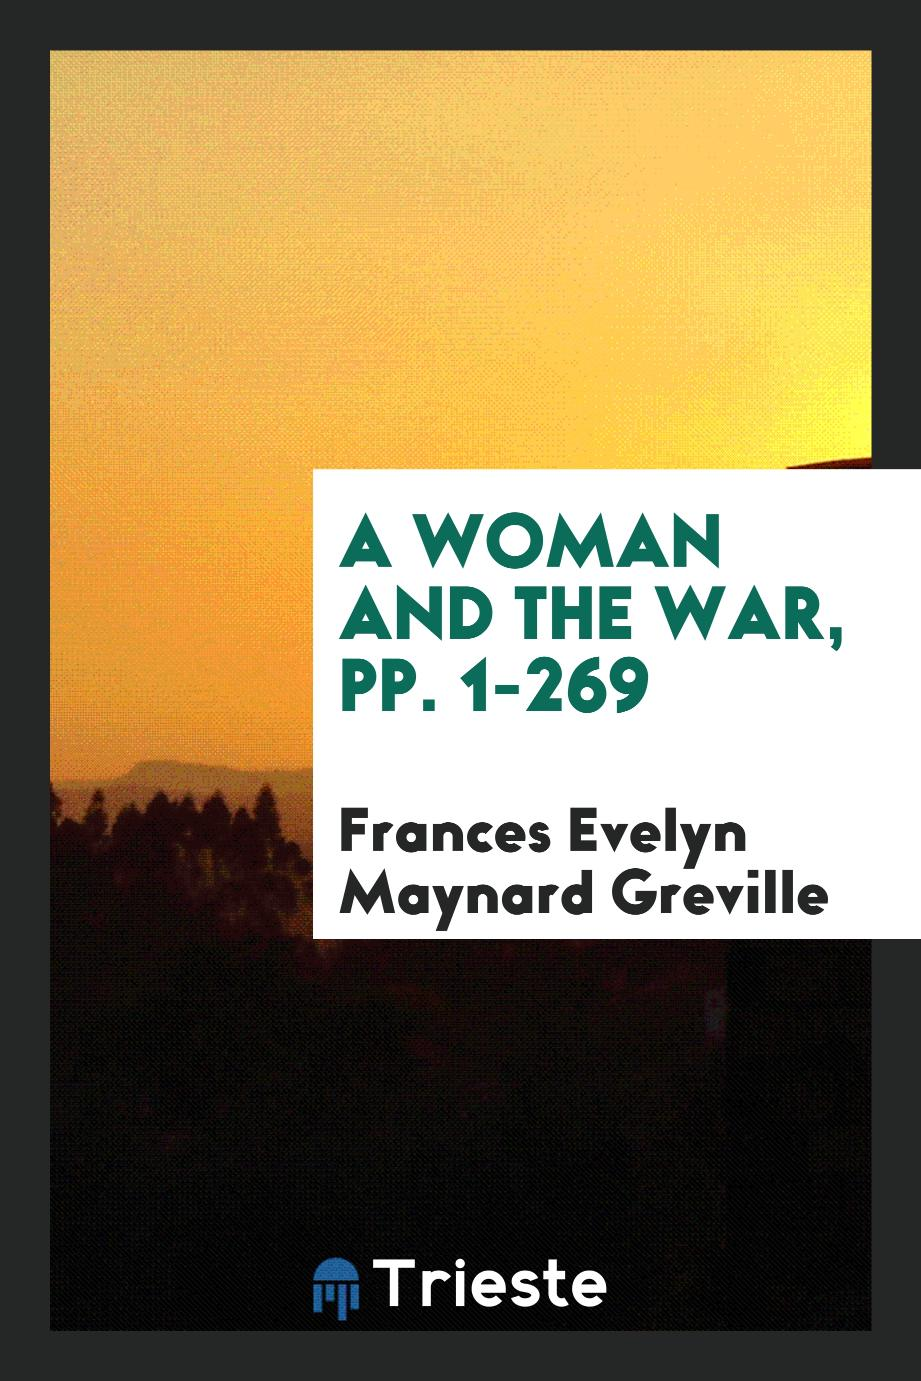 A Woman and the War, pp. 1-269